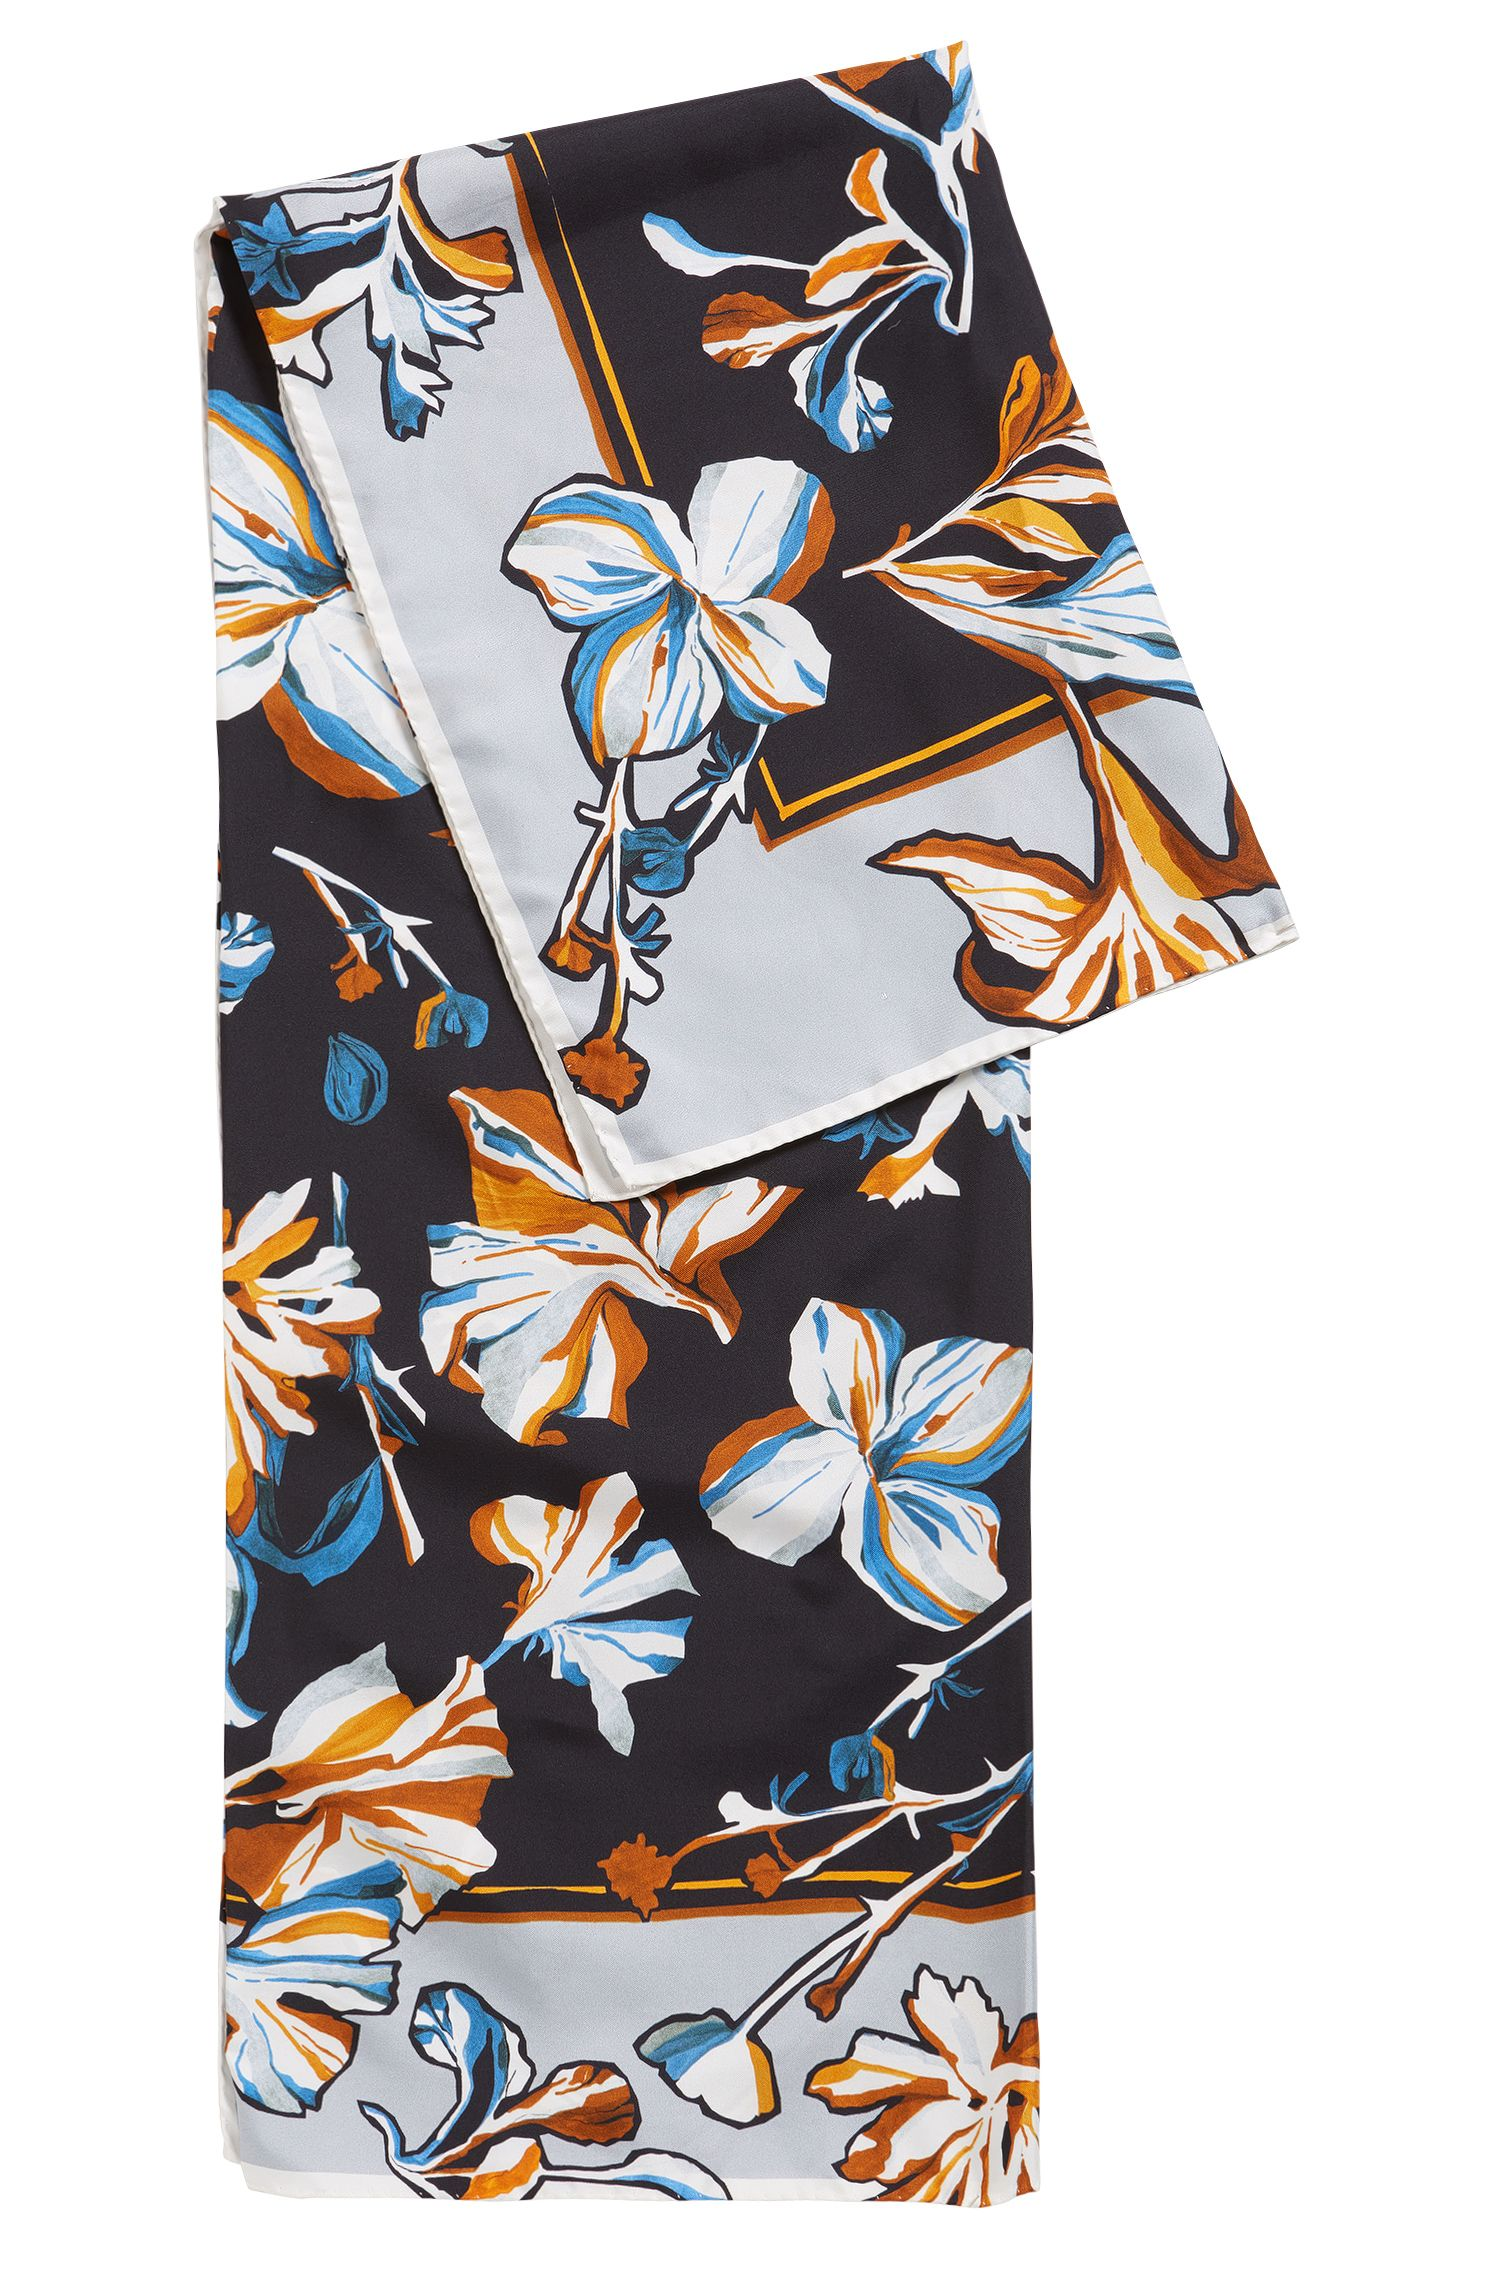 Floral Silk Scarf | Lorie